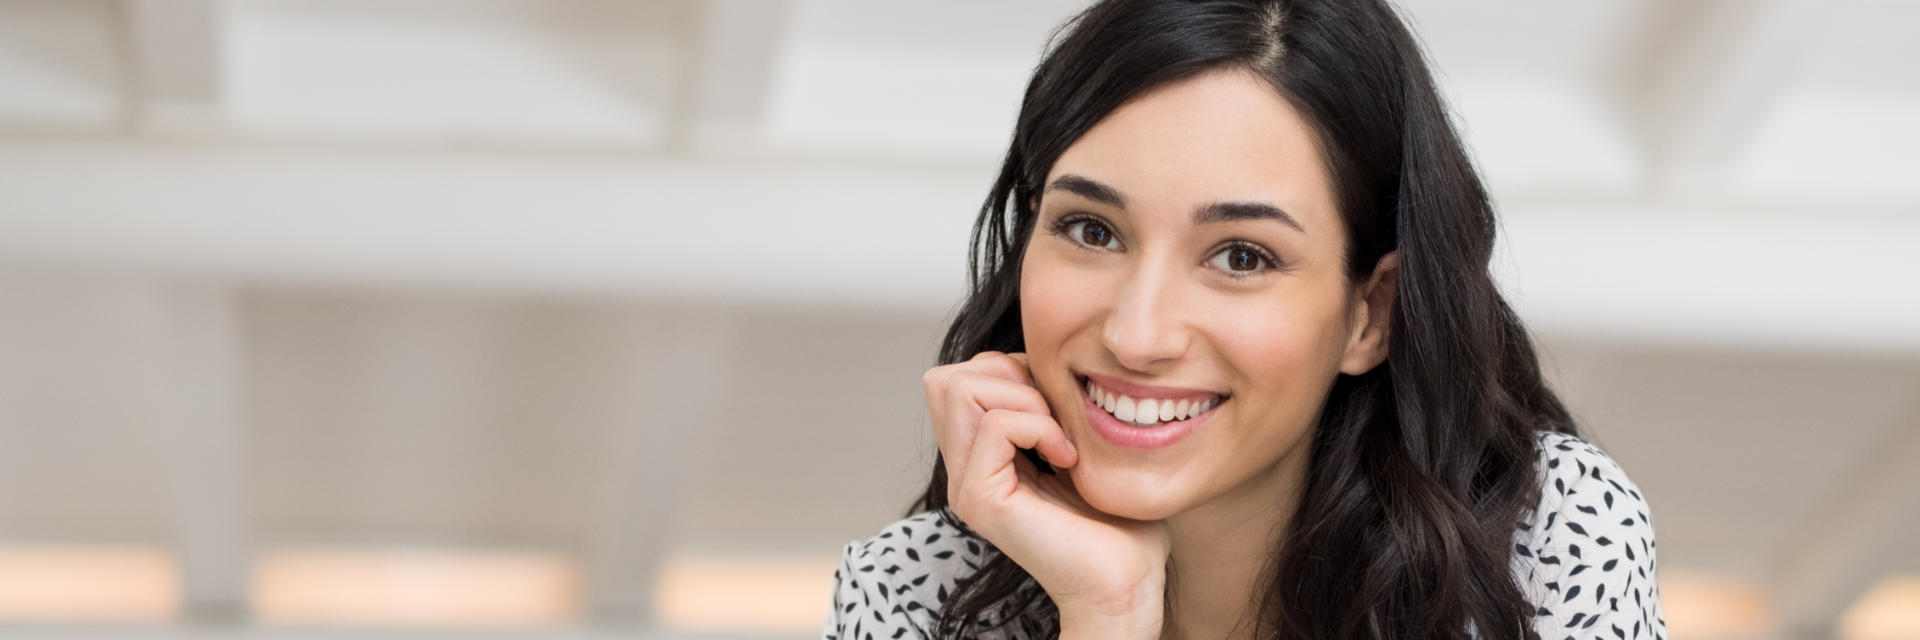 Beautiful young dark-haired woman with perfect smile.